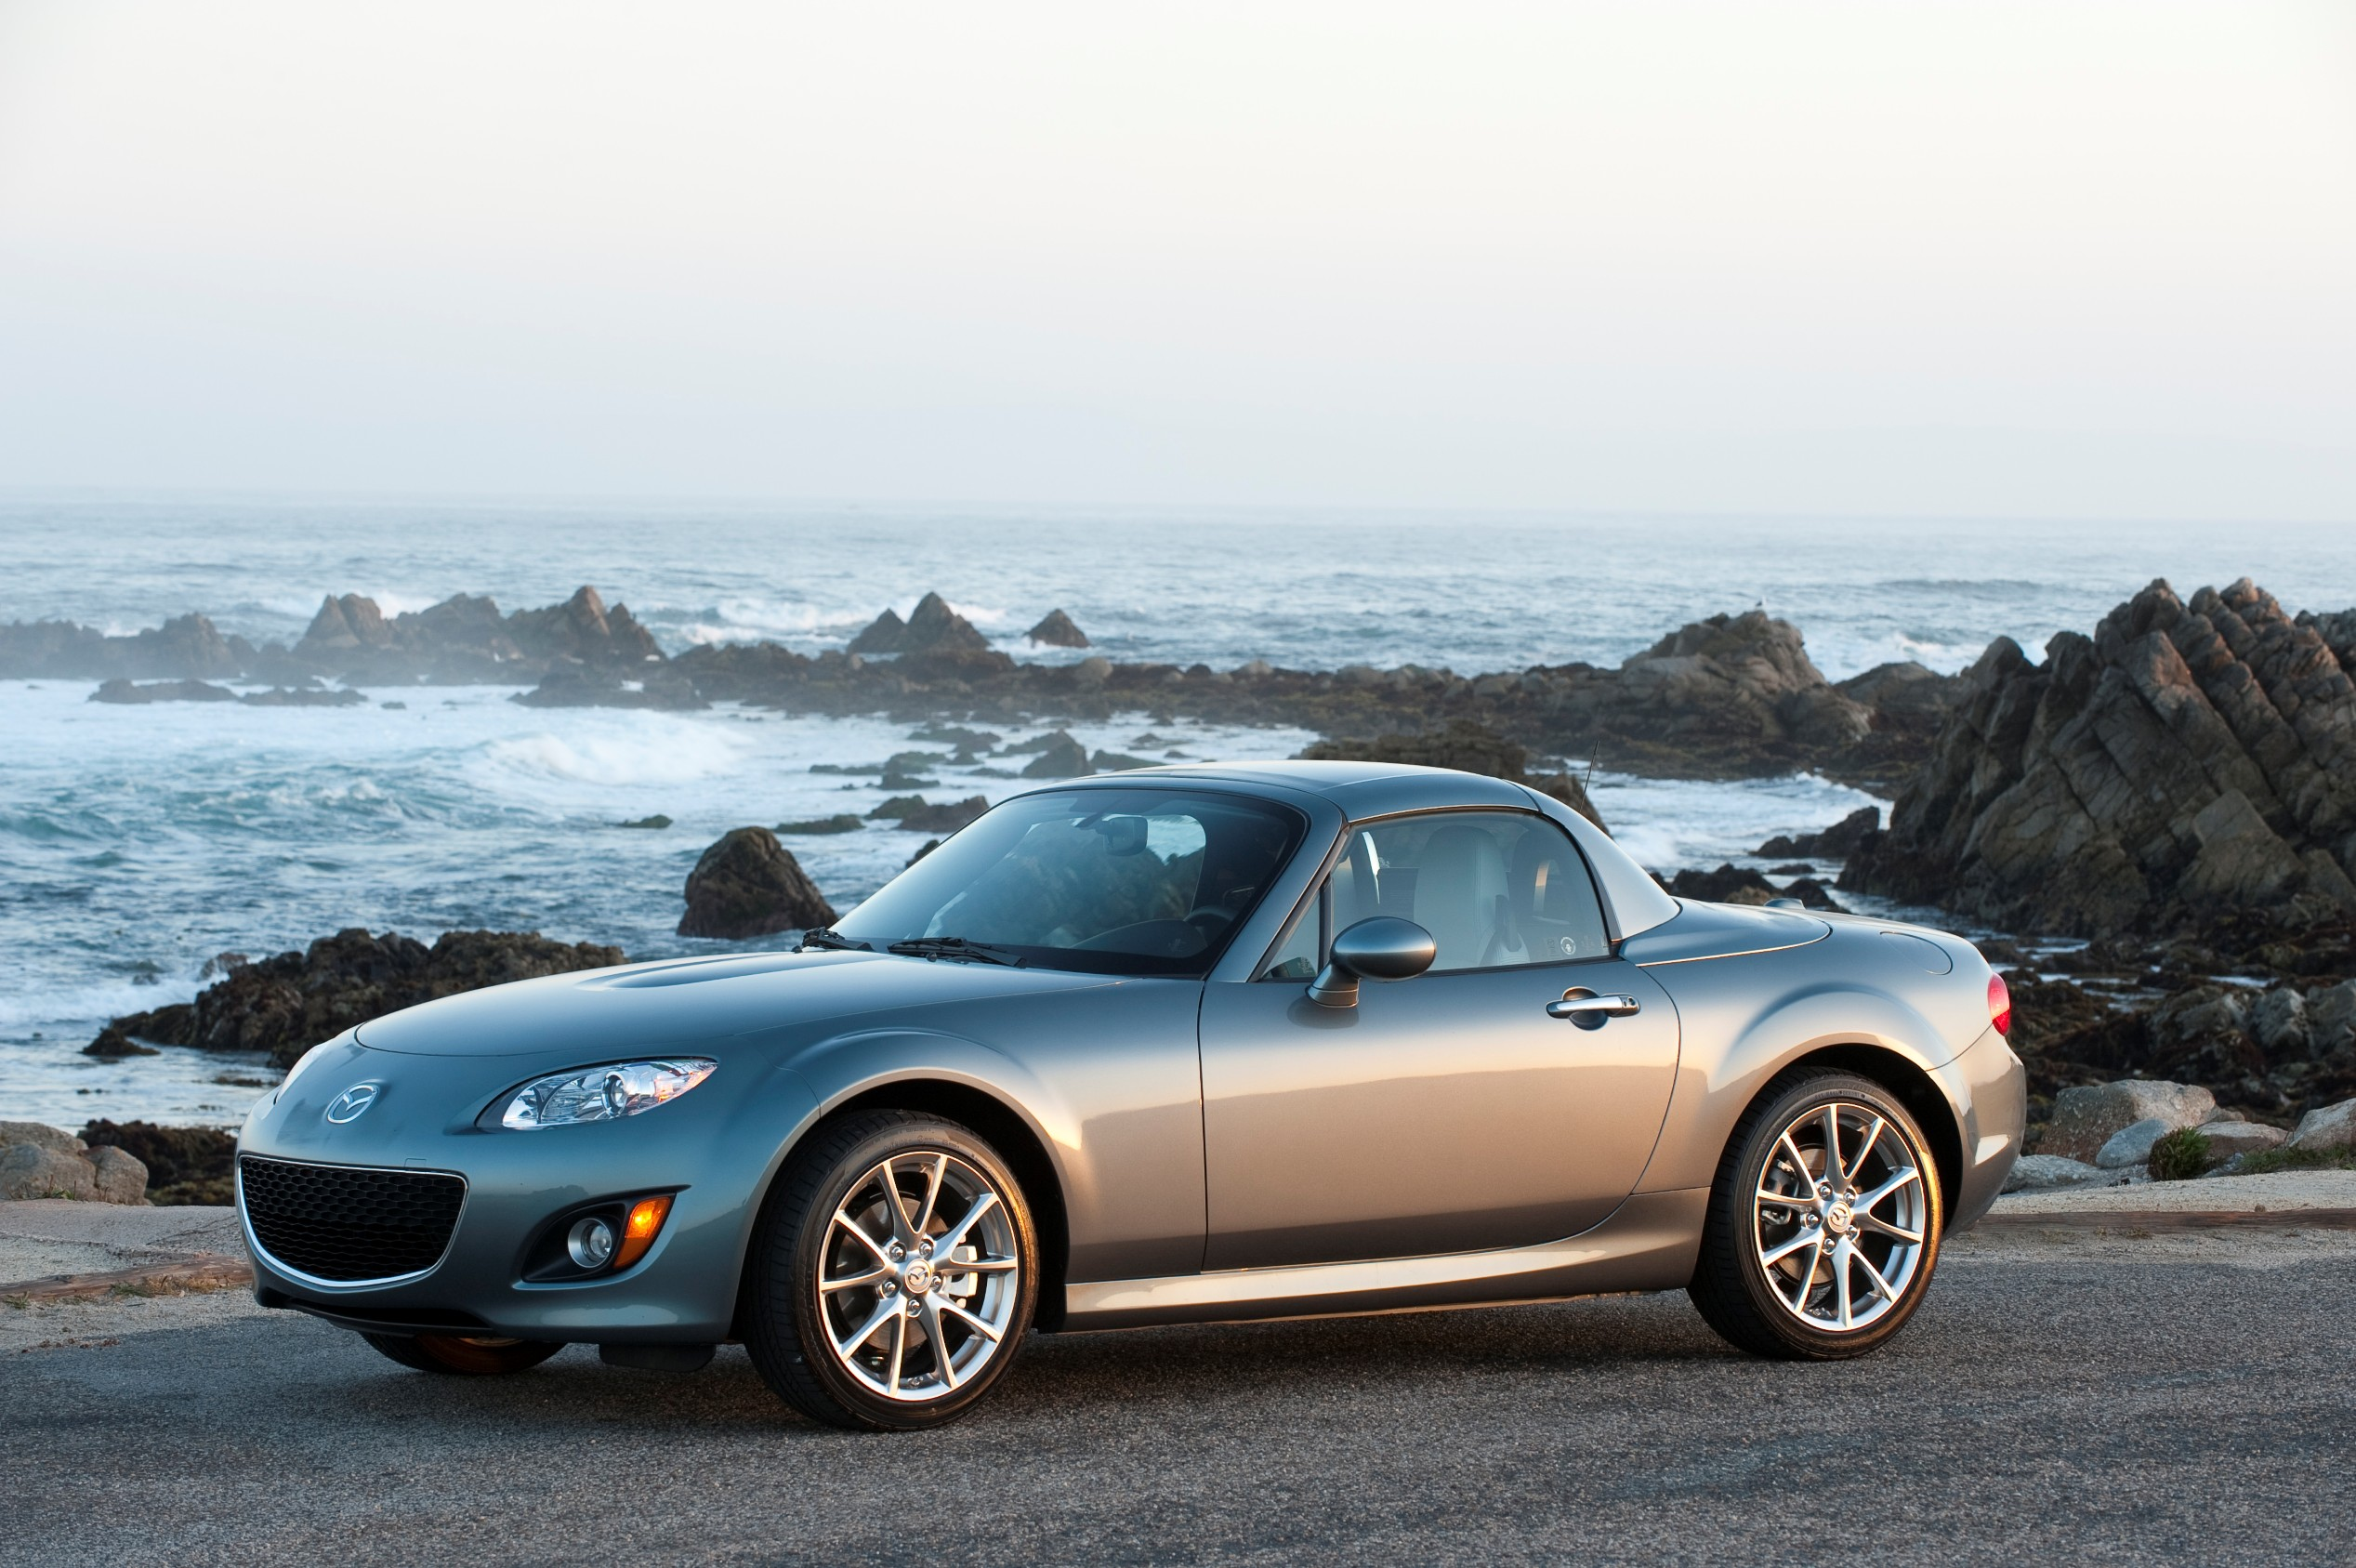 2012 Mazda Mx 5 Miata Review Ratings Specs Prices And